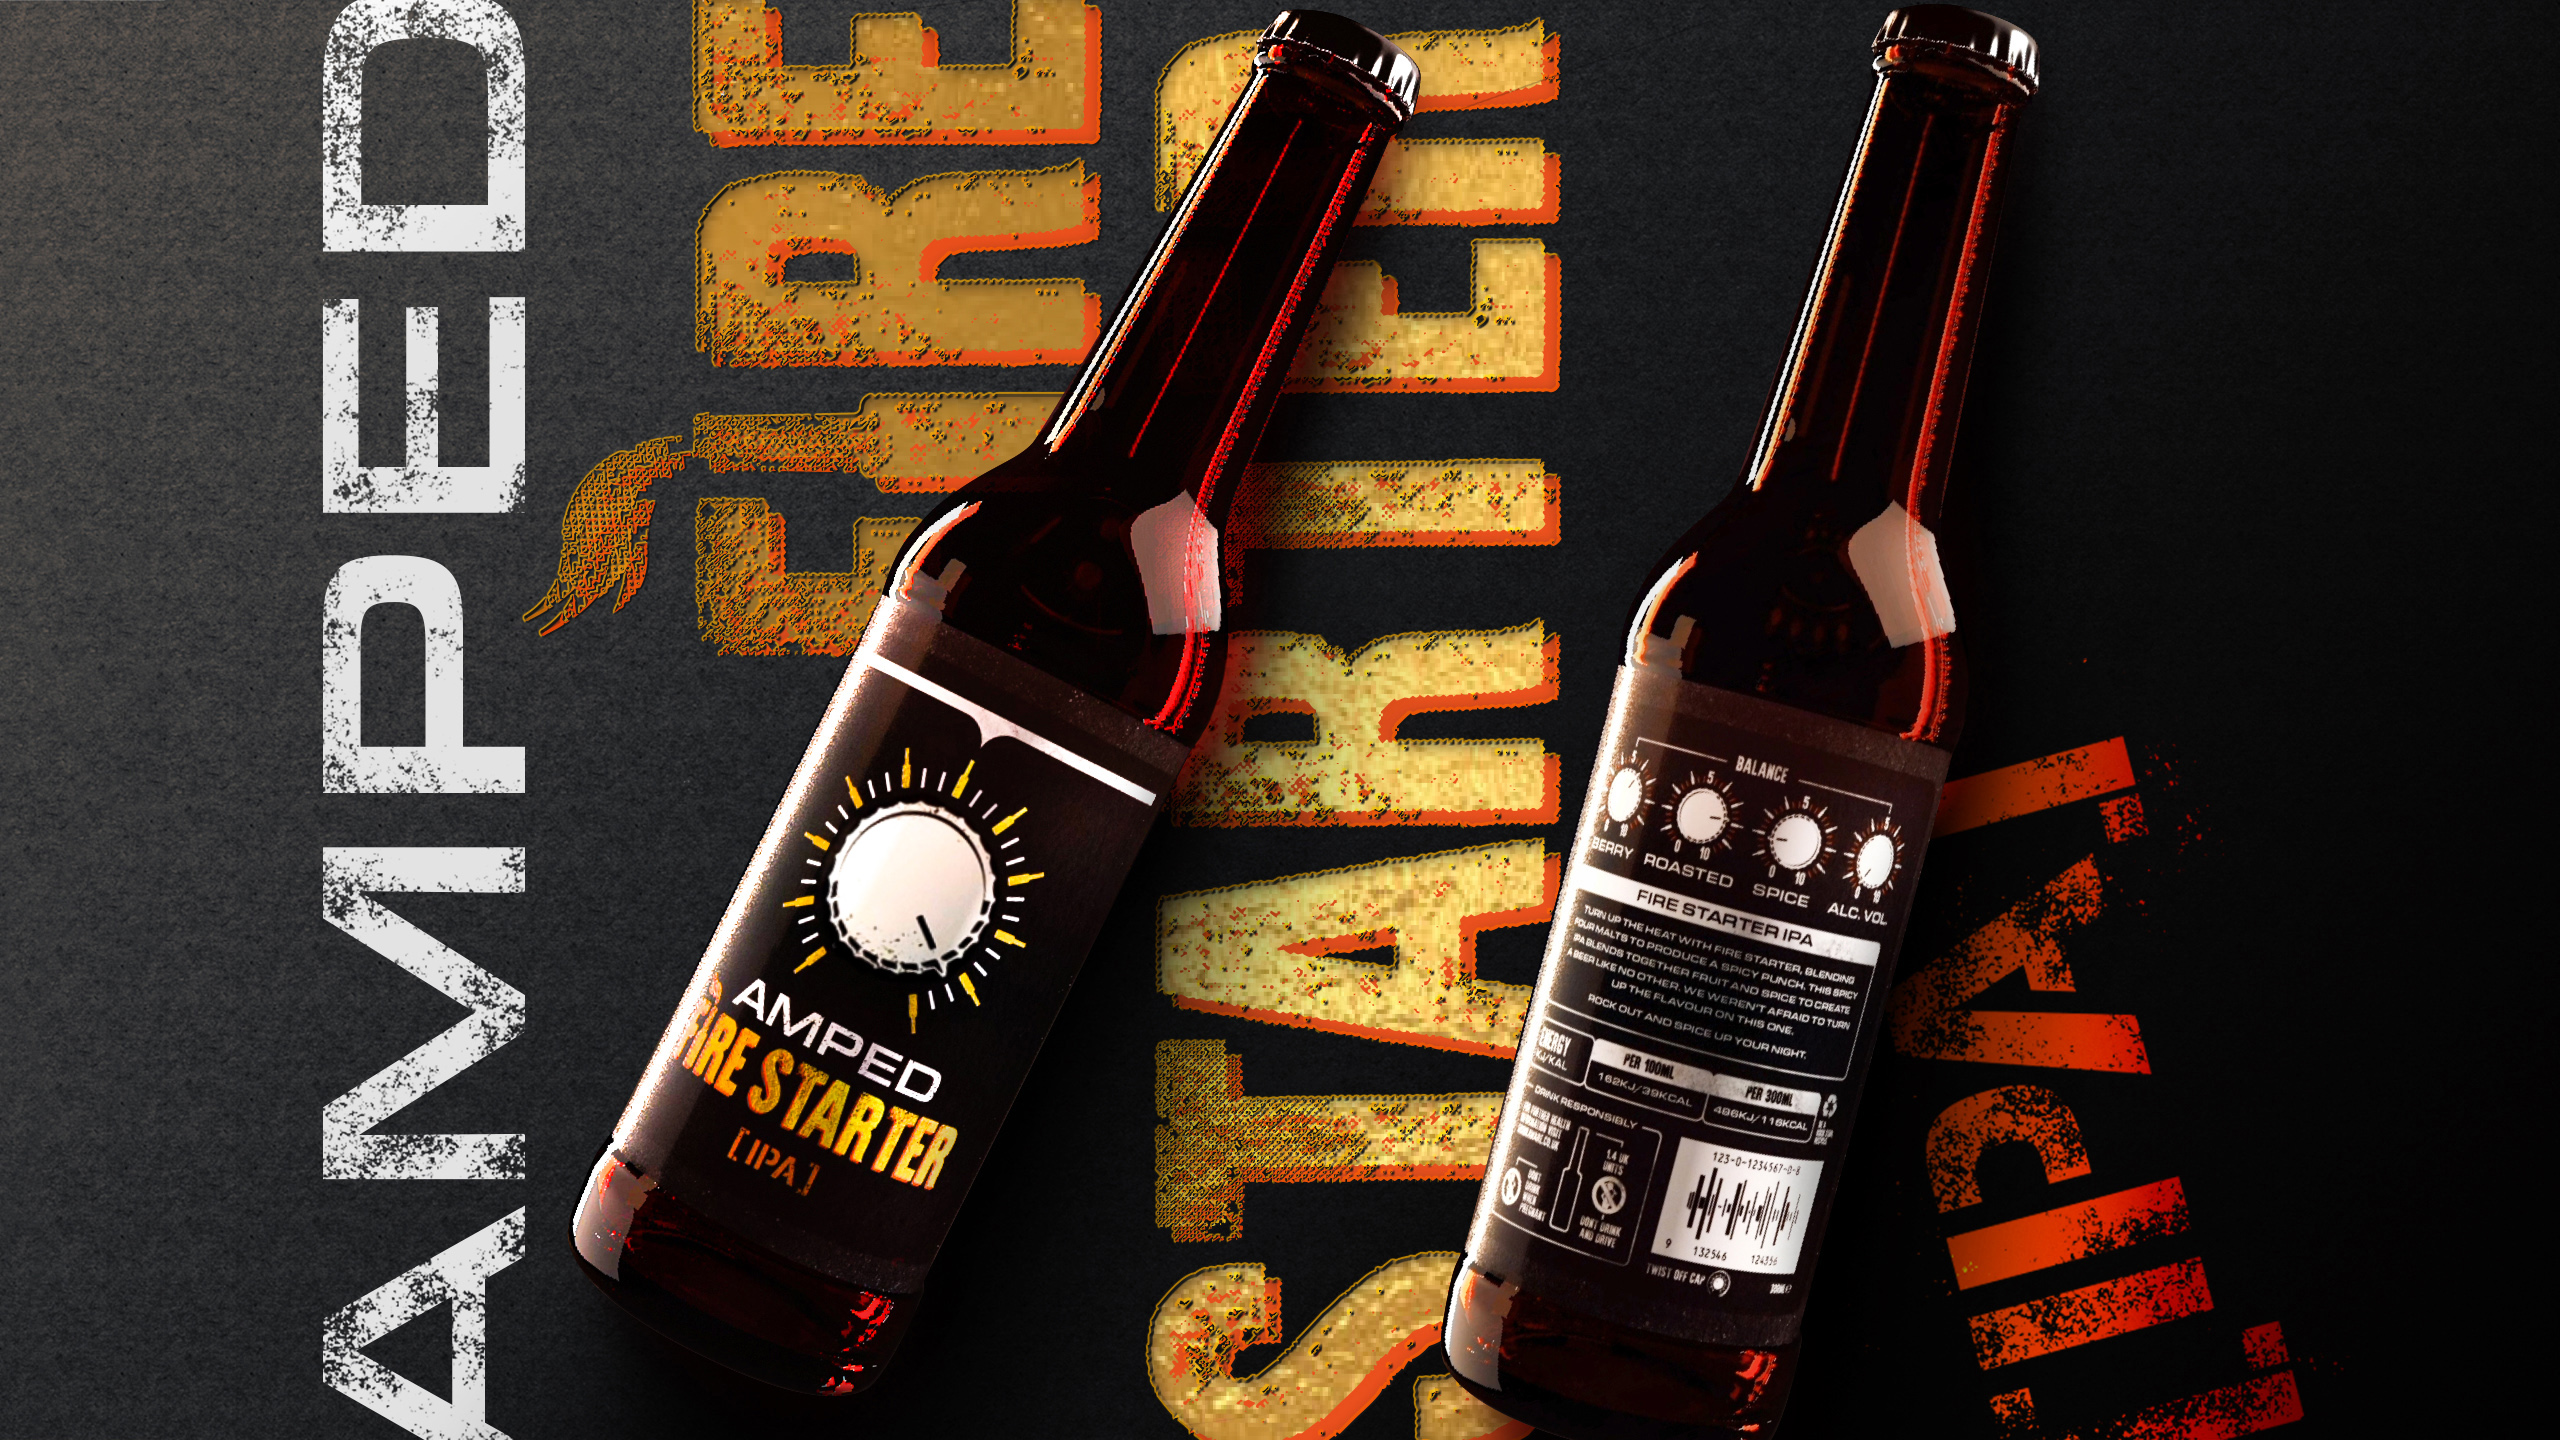 Student Packaging Design for Conceptual Brewery 'Amped' by Ethan Brown